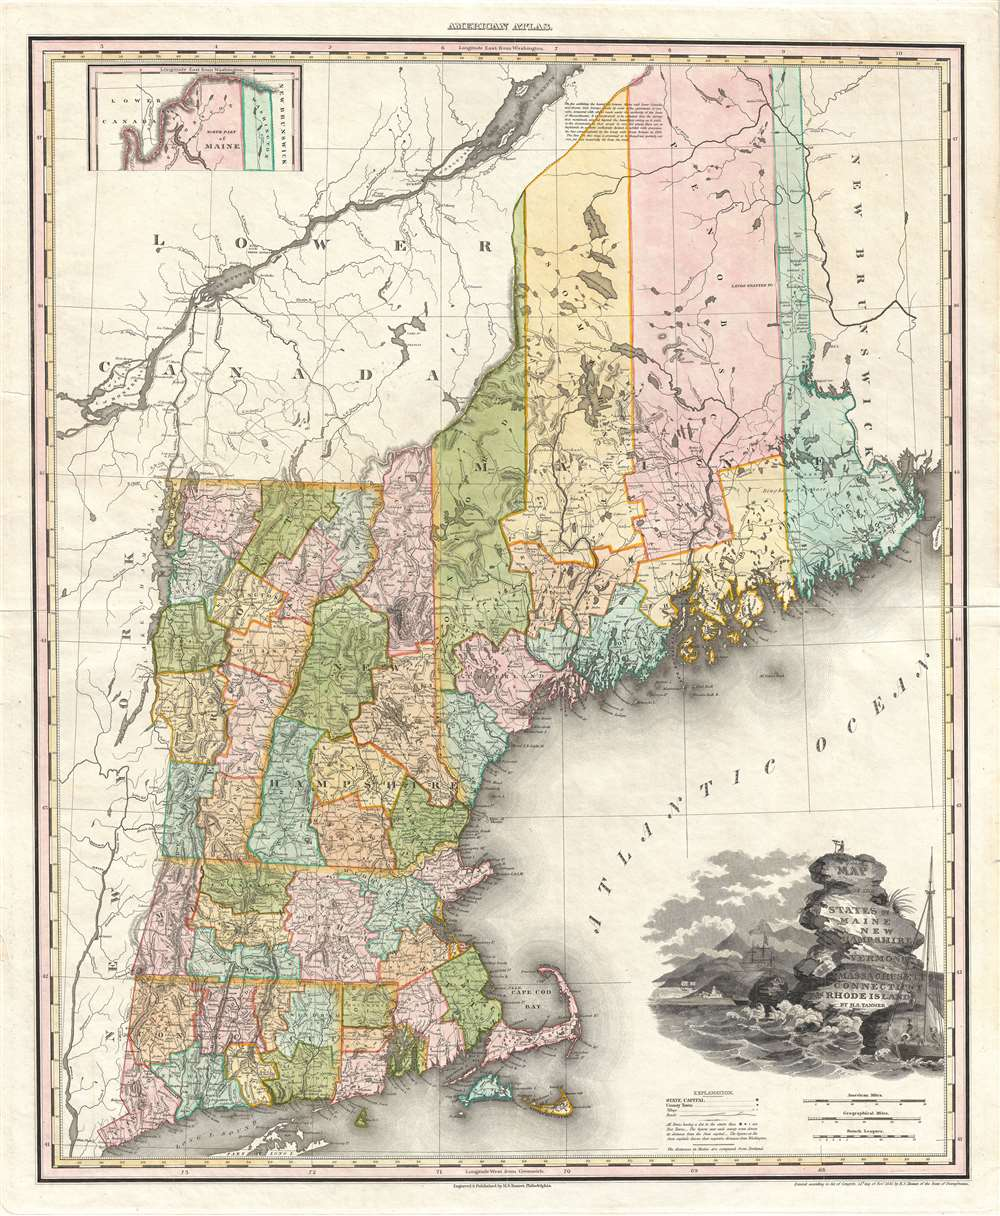 Map Of The States Of Maine New Hampshire Vermont Massachusetts - Antique map of maine